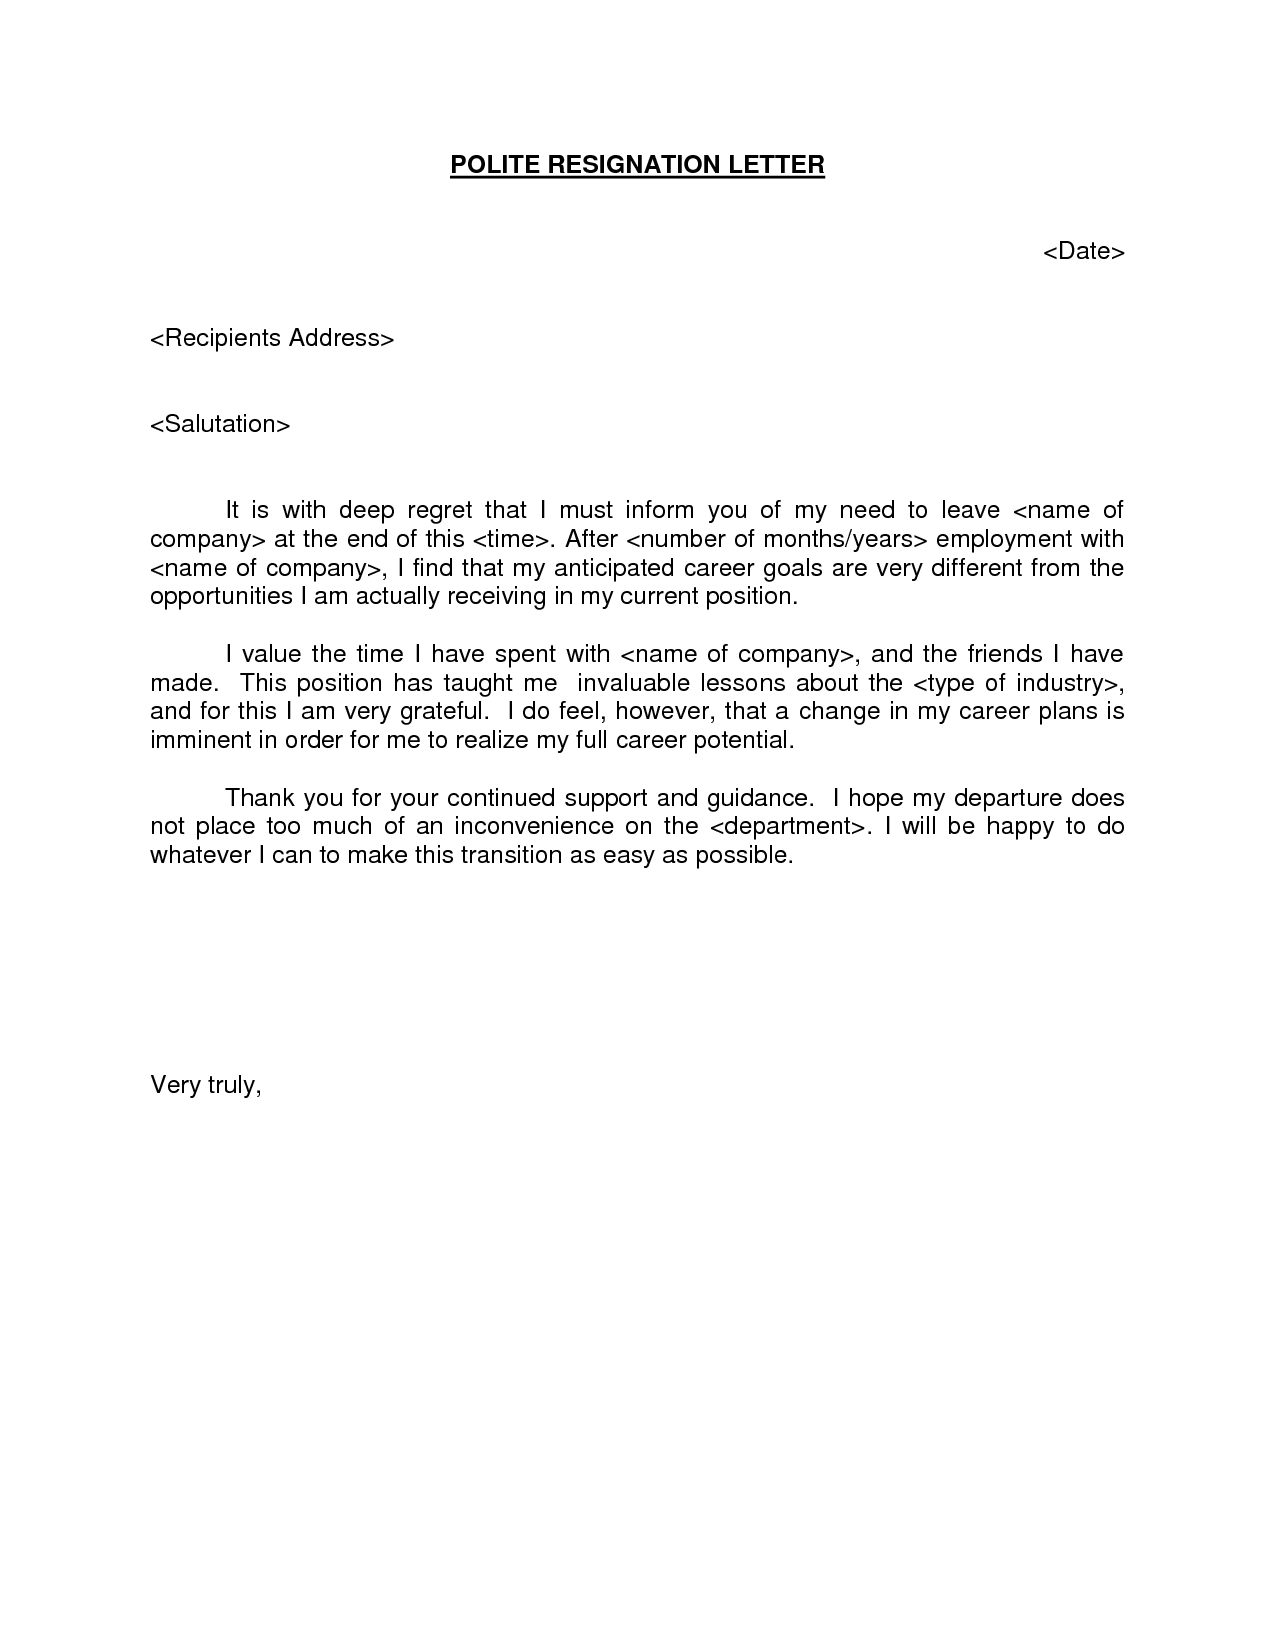 18 photos of template of resignation letter in word marketing polite resignation letter bestdealformoneywriting a letter of resignation email letter sample